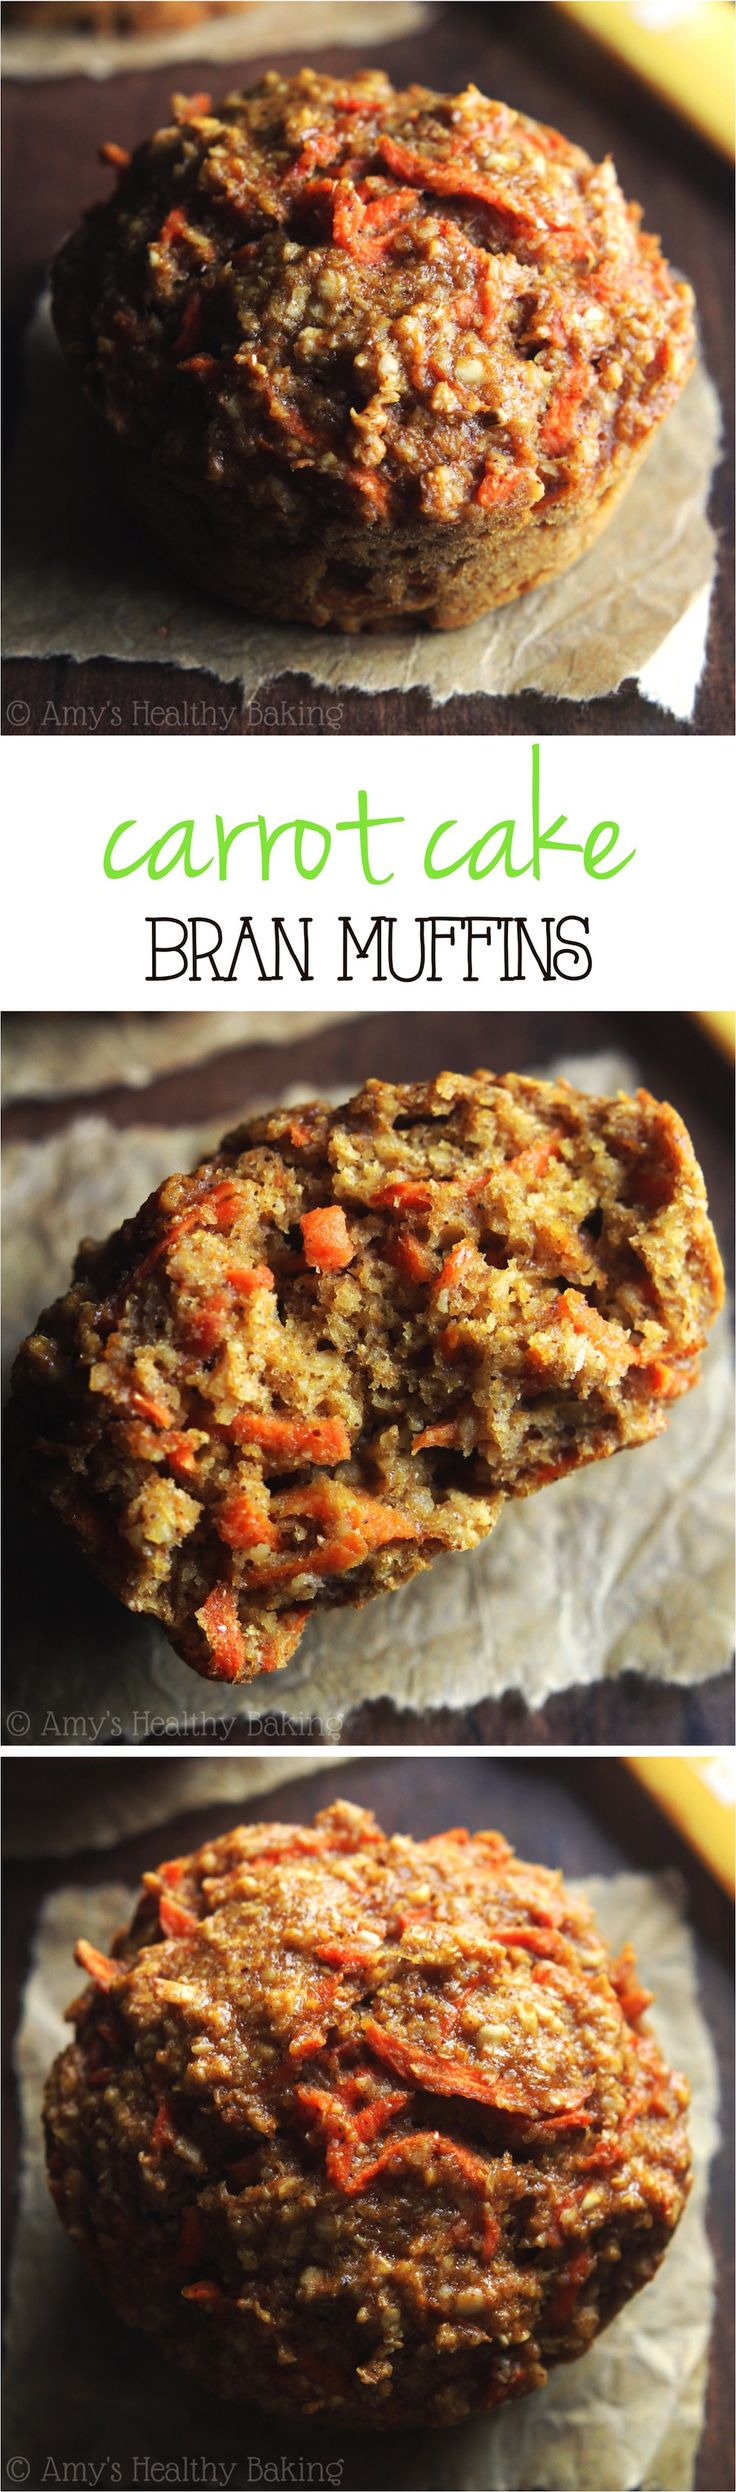 Clean-Eating Carrot Cake Bran Muffins -- one simple trick makes these the moistest bran muffins ever! They practically taste like cupcakes! Use egg substitute